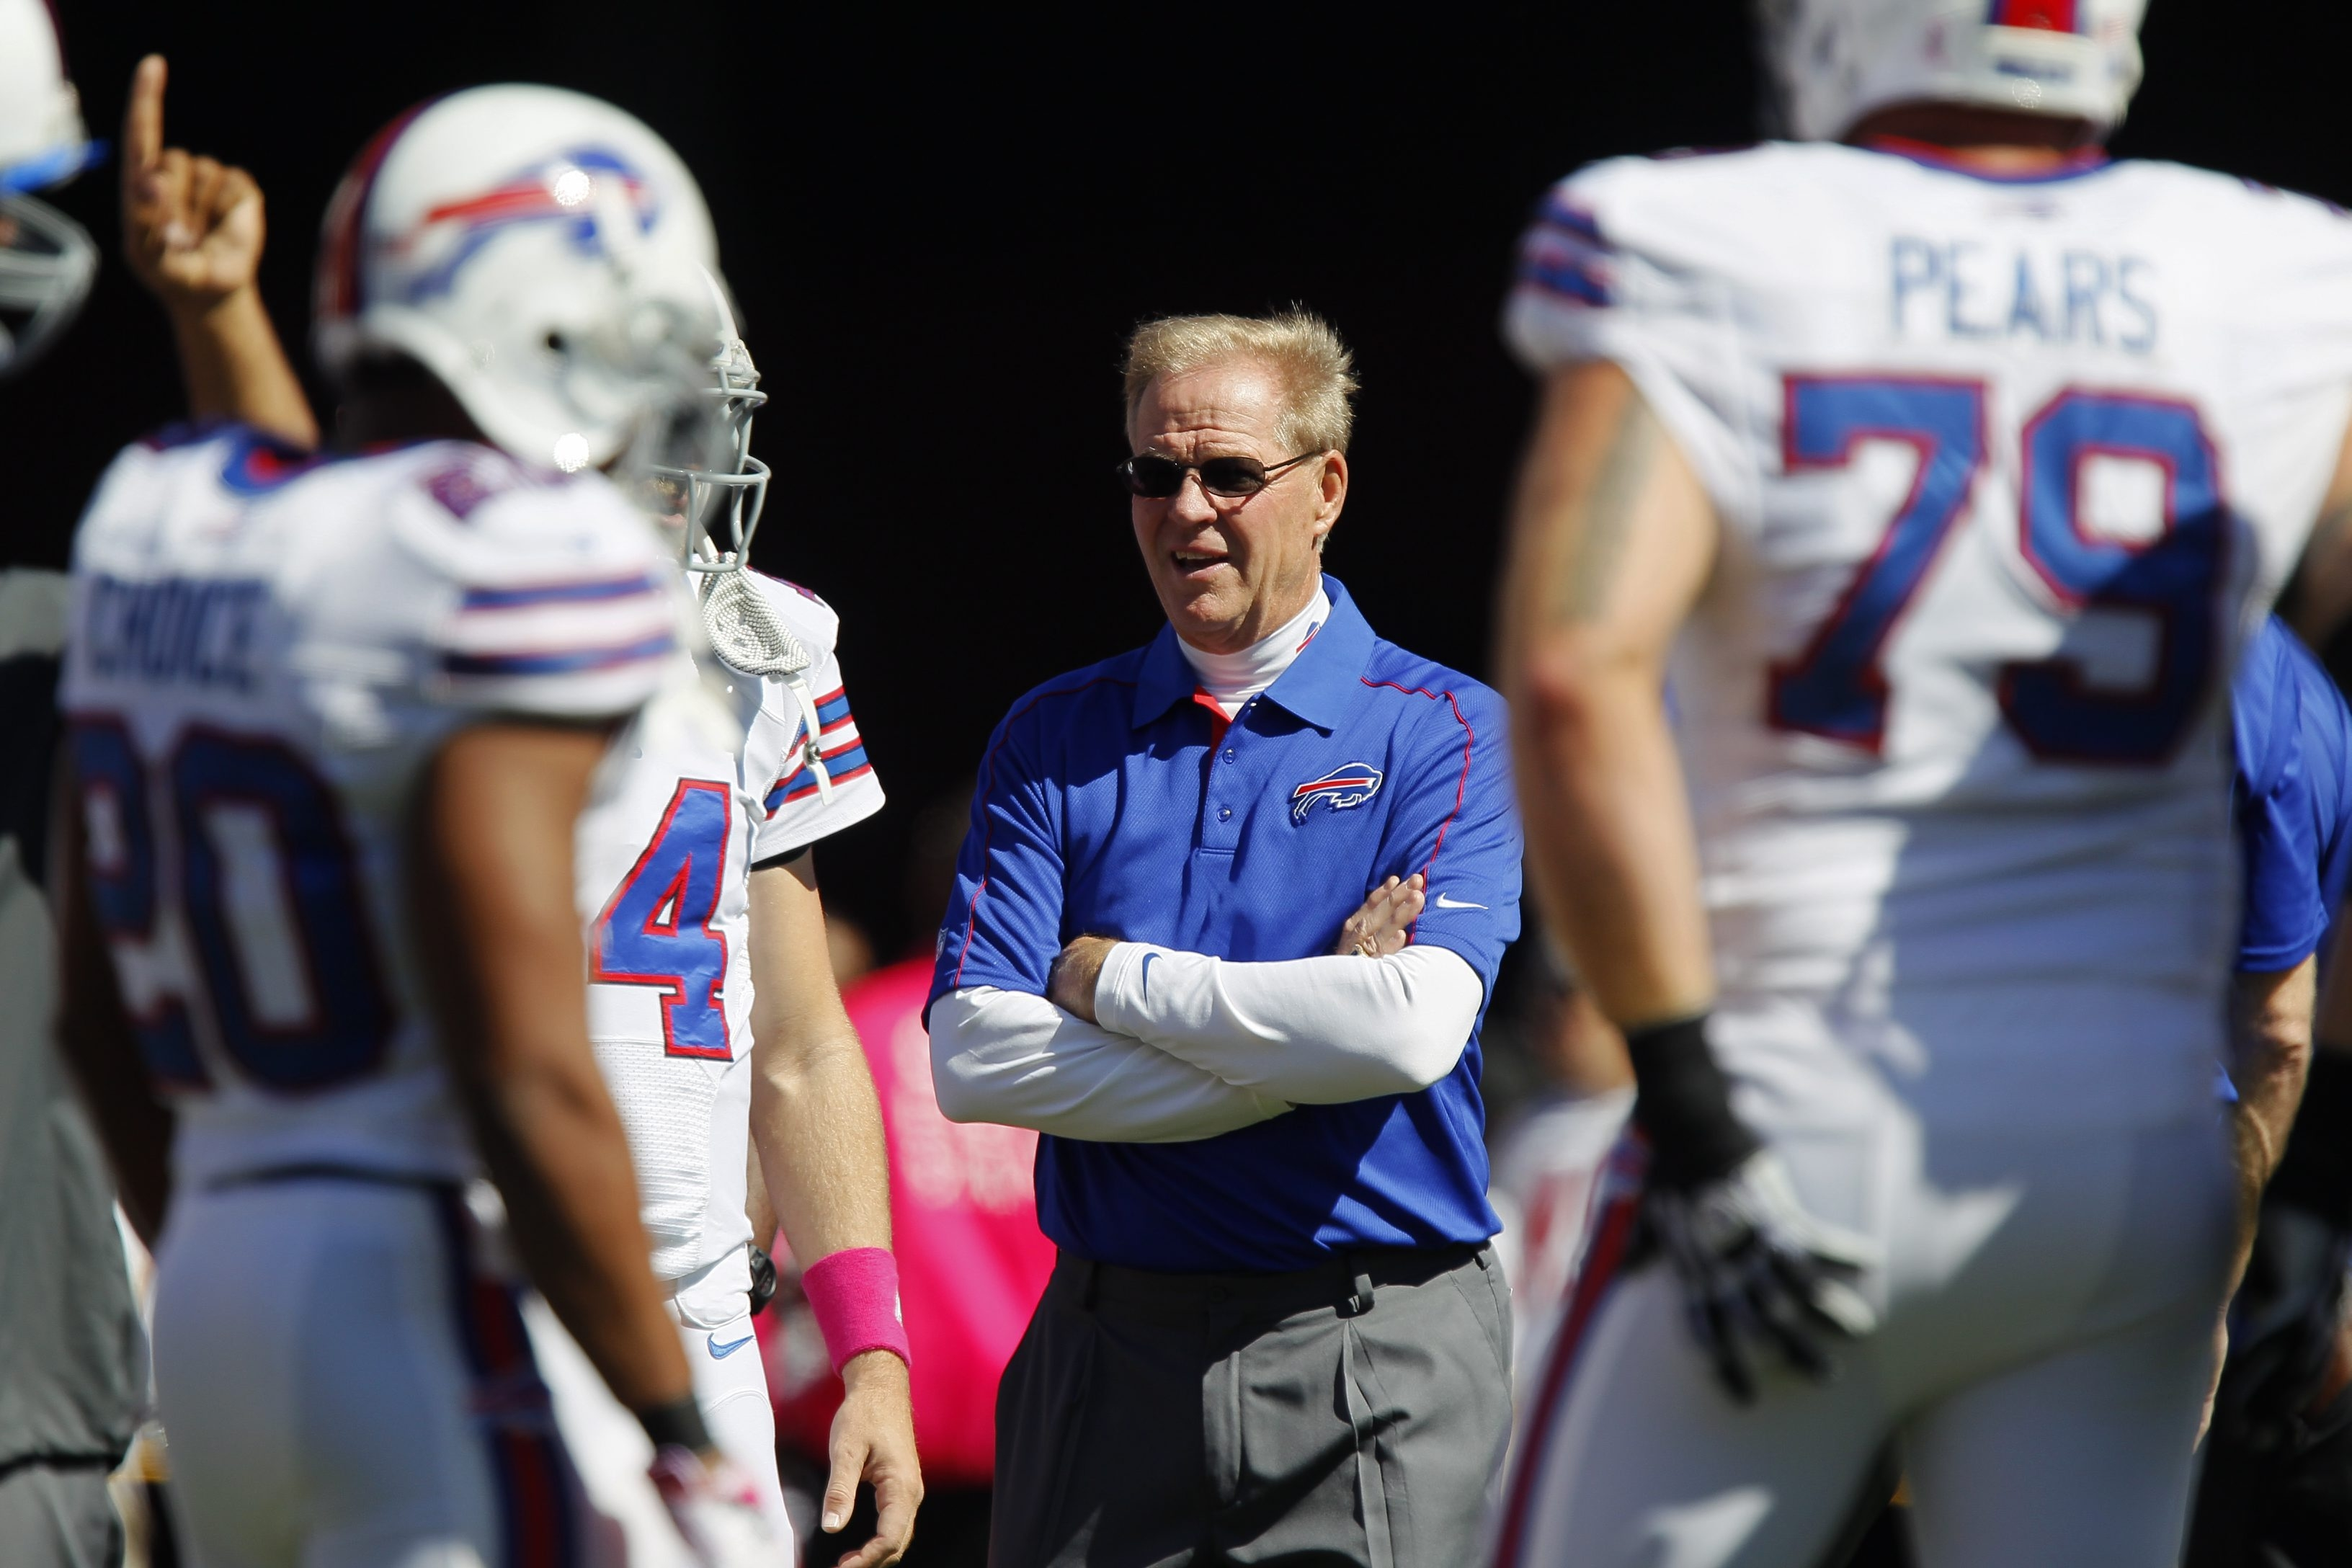 Bruce DeHaven coached some of the finest special teams the NFL has seen during his time with the Buffalo Bills. Now he plies his craft with the unbeaten Carolina Panthers while also undergoing cancer treatments.